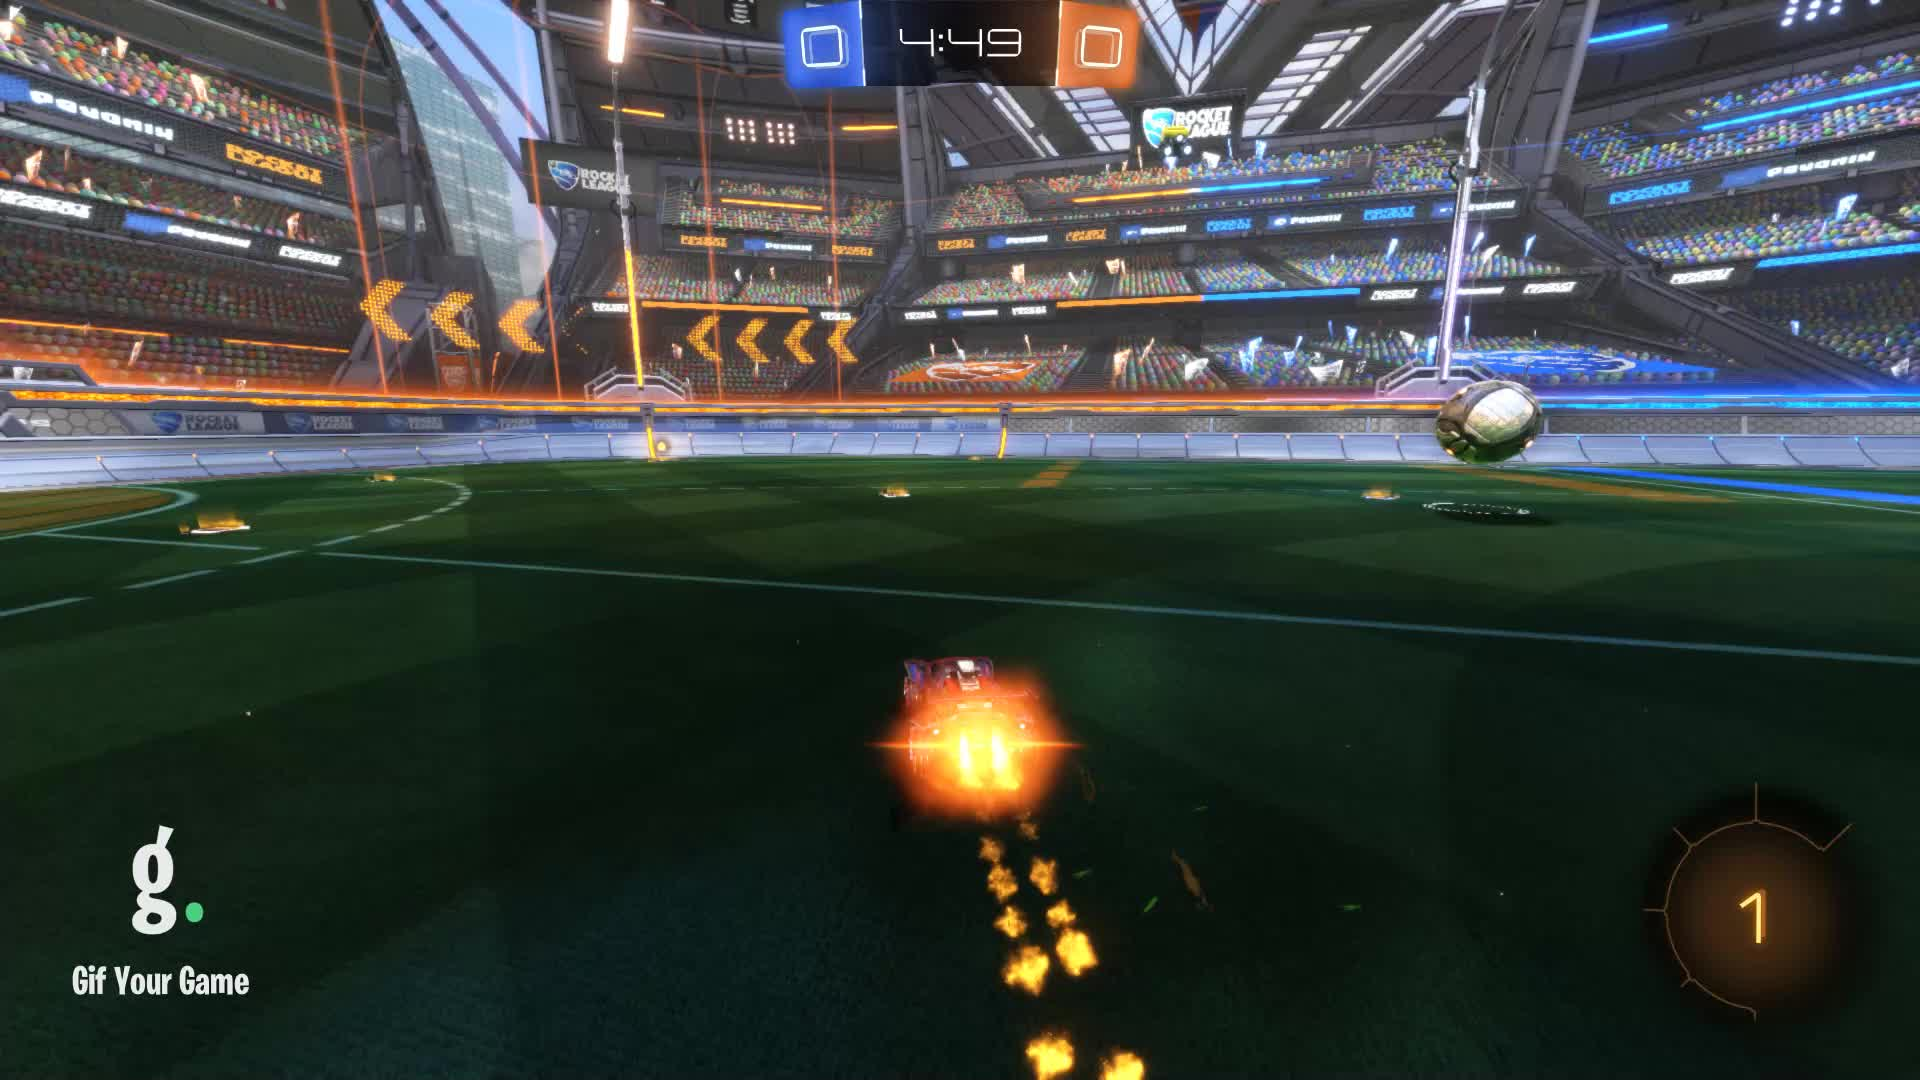 Gif Your Game, GifYourGame, Goal, Rocket League, RocketLeague, Timper [NL], Goal 1: Timper [NL] GIFs